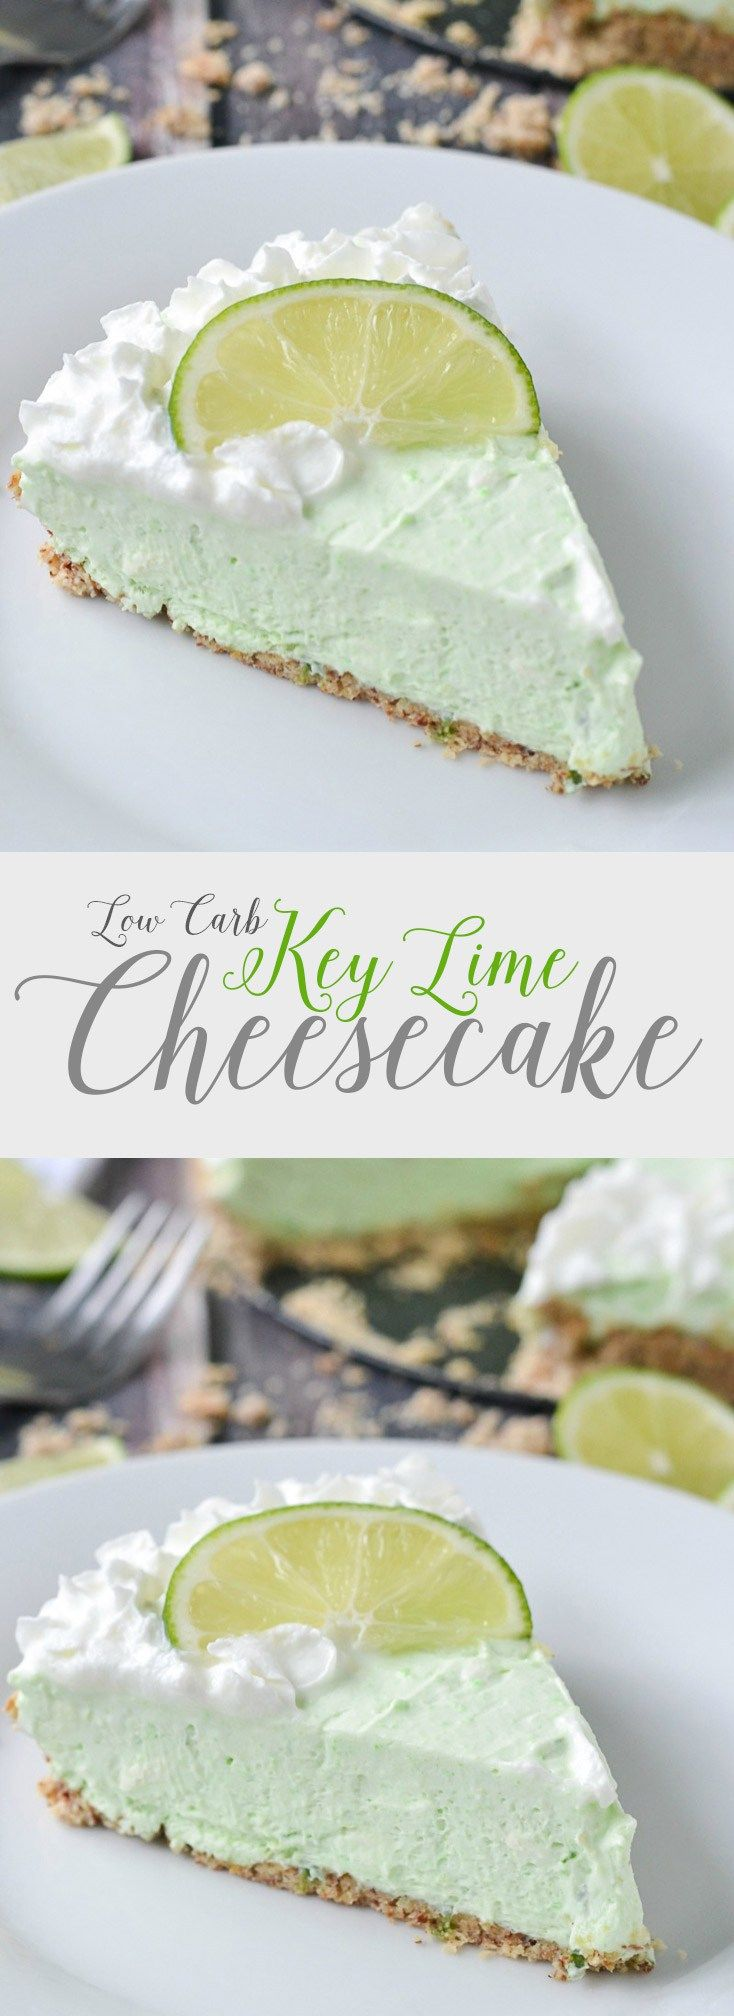 Low Carb Key Lime Cheesecake | An easy recipe for rich and creamy low carb key lime cheesecake. Not only is this cheesecake delicious it's easy to make too!